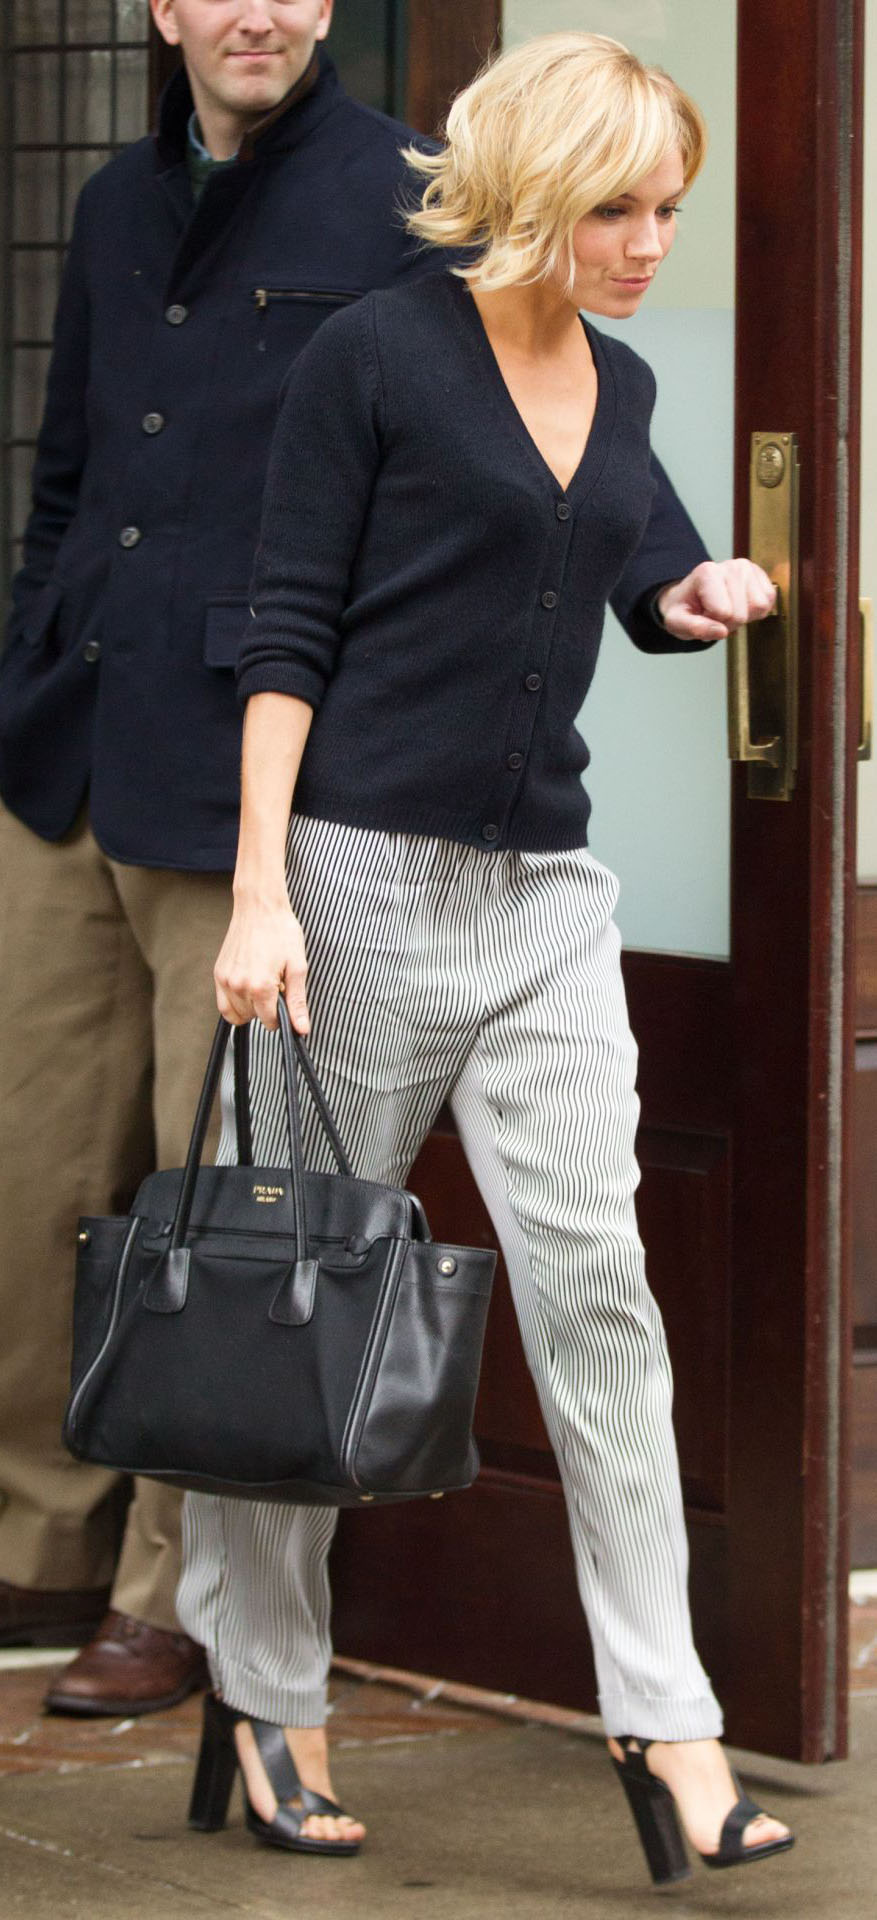 grayl-joggers-pants-stripe-black-cardigan-black-bag-black-shoe-sandalh-siennamiller-spring-summer-blonde-work.jpg